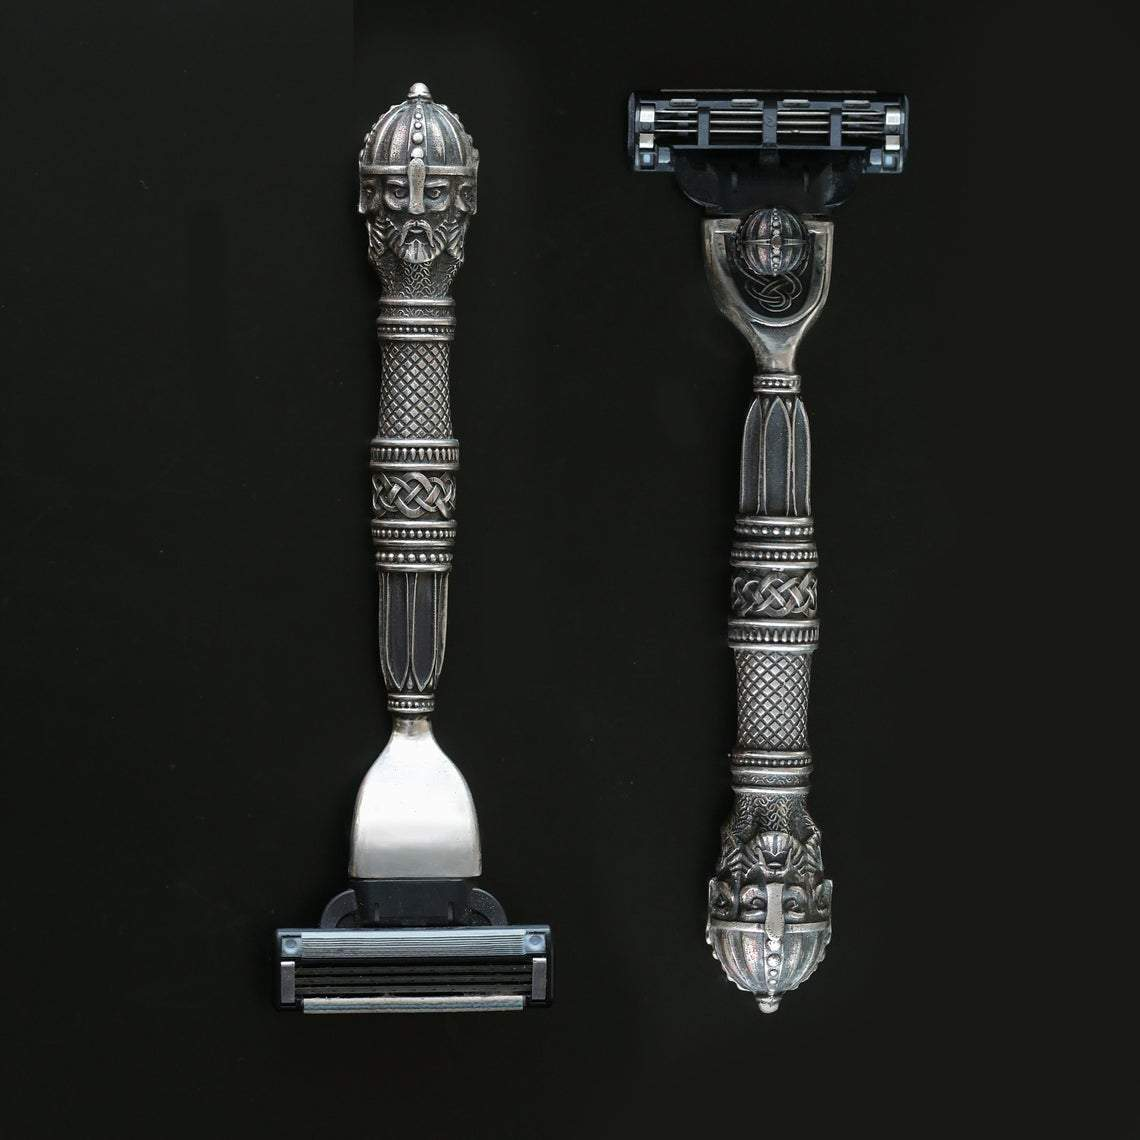 Razor Viking Gillette Mach3 Silver Slavic Warrior Straight Razor Ancient Treasures Ancientreasures Viking Odin Thor Mjolnir Celtic Ancient Egypt Norse Norse Mythology